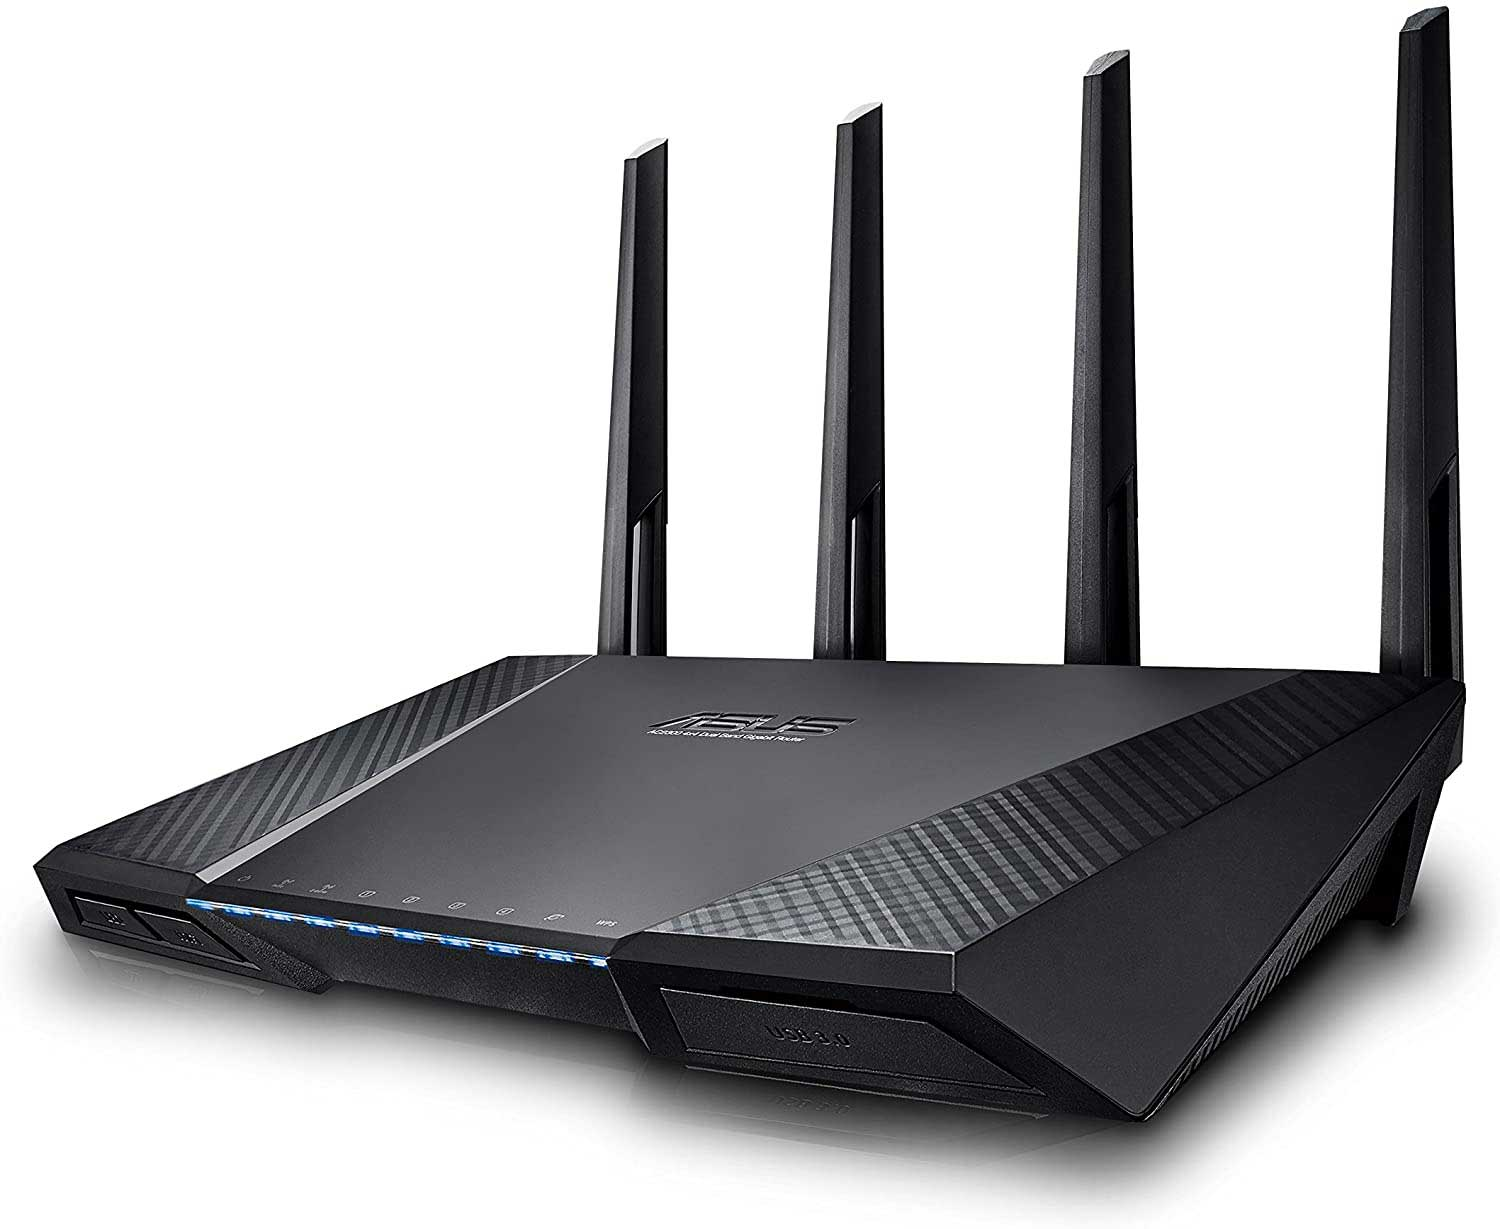 Asus RT-AC88U Gaming Router (Ai Mesh WLAN System, WiFi 5 AC3100, Gaming Engine, 1.4 GHz DC CPU, AiProtection, USB 3.0, Router bis zu 200 m²)